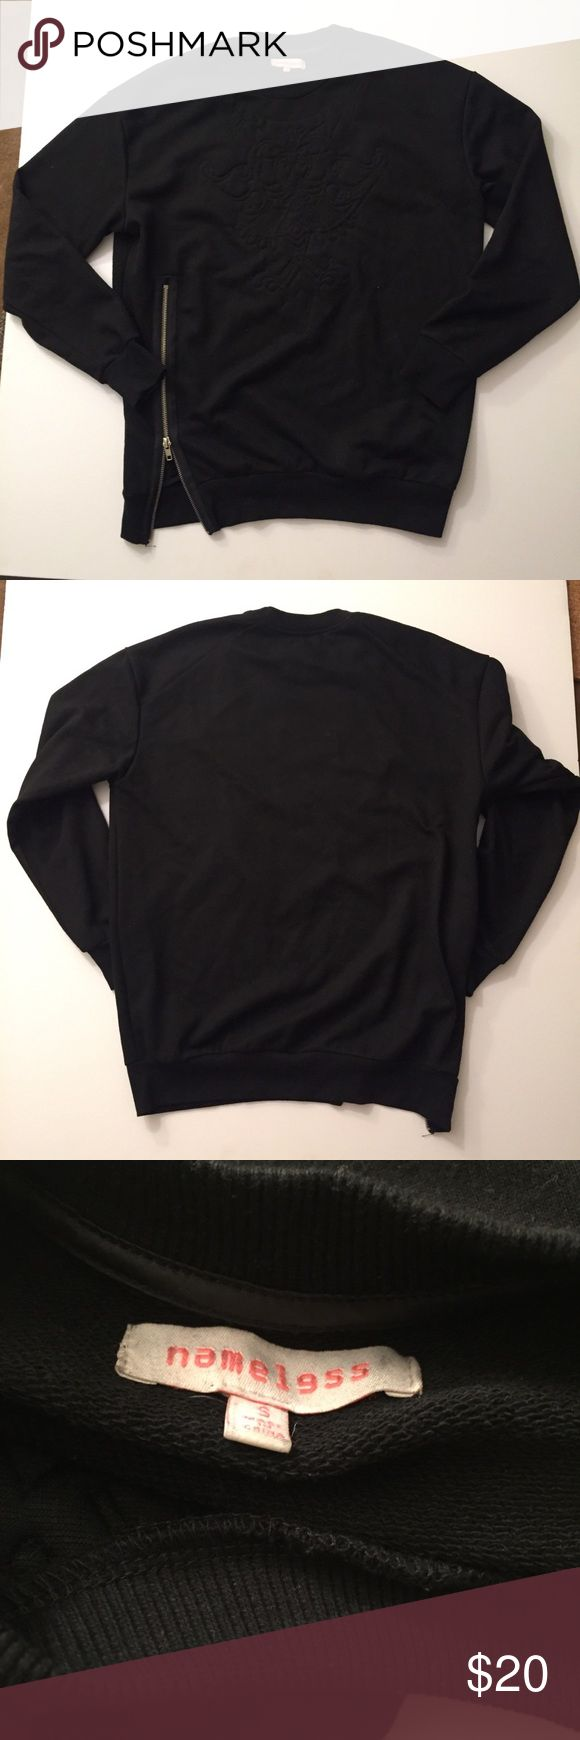 Nameless: side zip black sweater-S Very good condition size small.  Brand is nameless Tags: mura, tiger mist, showpo, sabo skirt, white fox, missguided, h and m, hello Molly, Stelly, hot Miami styles, fashion nova, princess Polly, verge girl, pop cherry, forever 21, Nordstrom, revolve nameless: Sweaters Crew & Scoop Necks